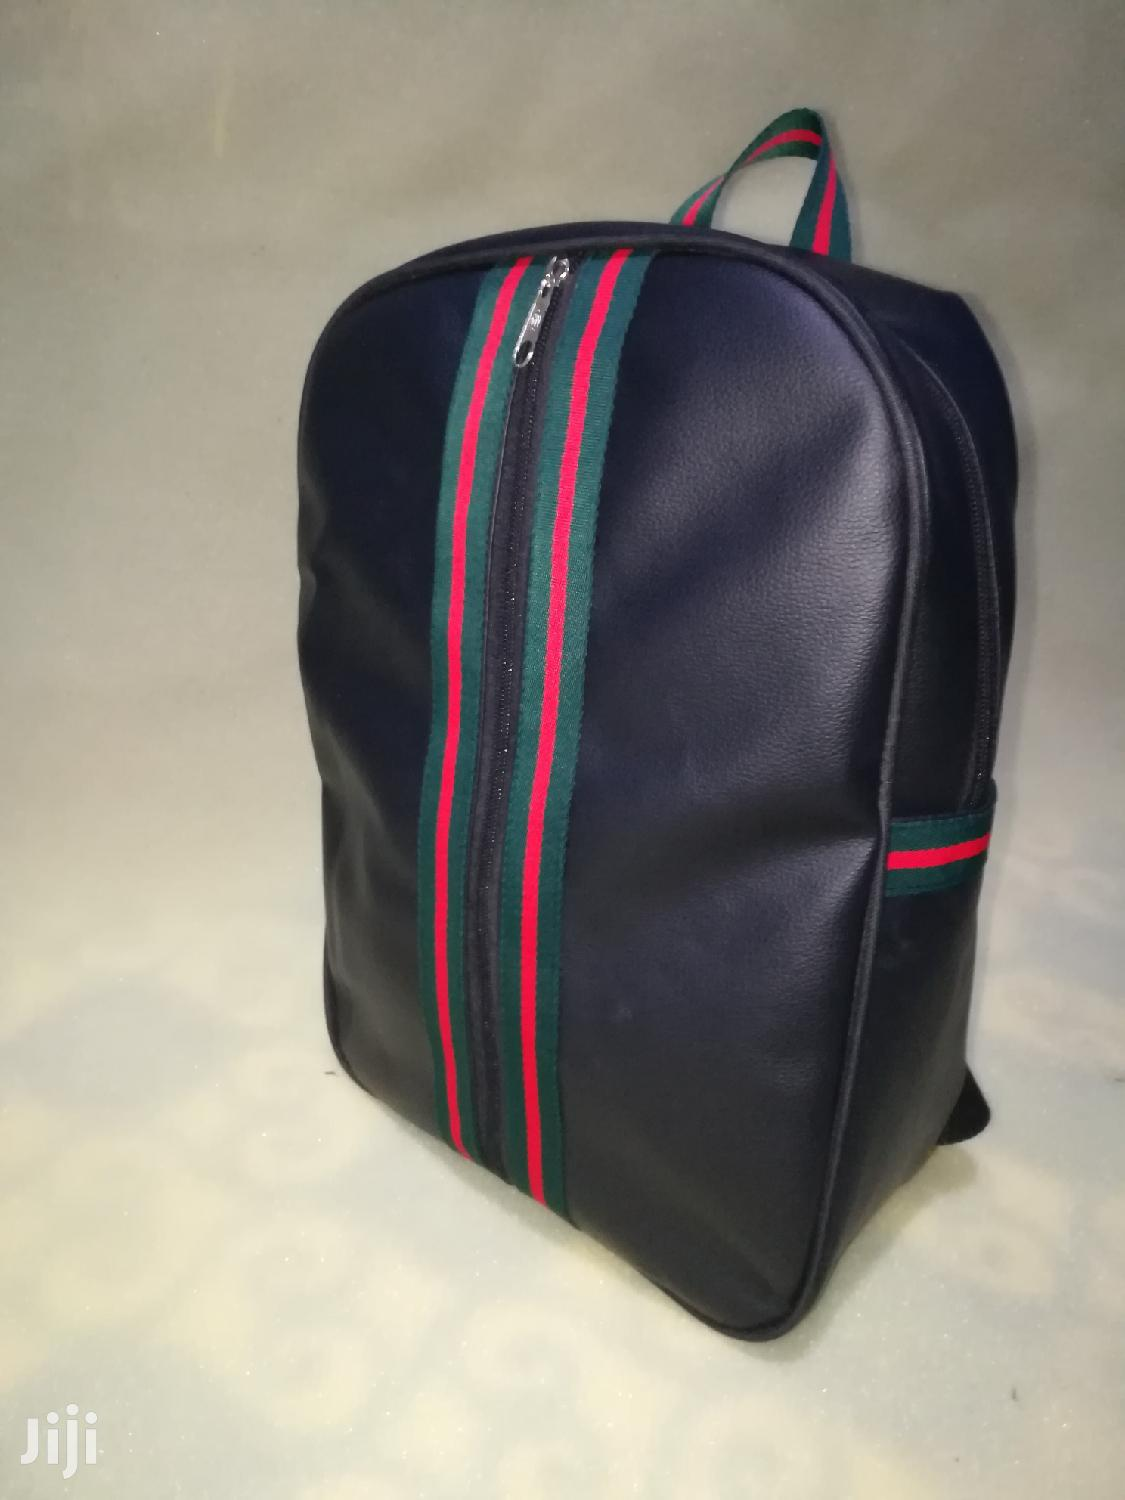 Black Leather Gucci Backpack | Bags for sale in Achimota, Greater Accra, Ghana